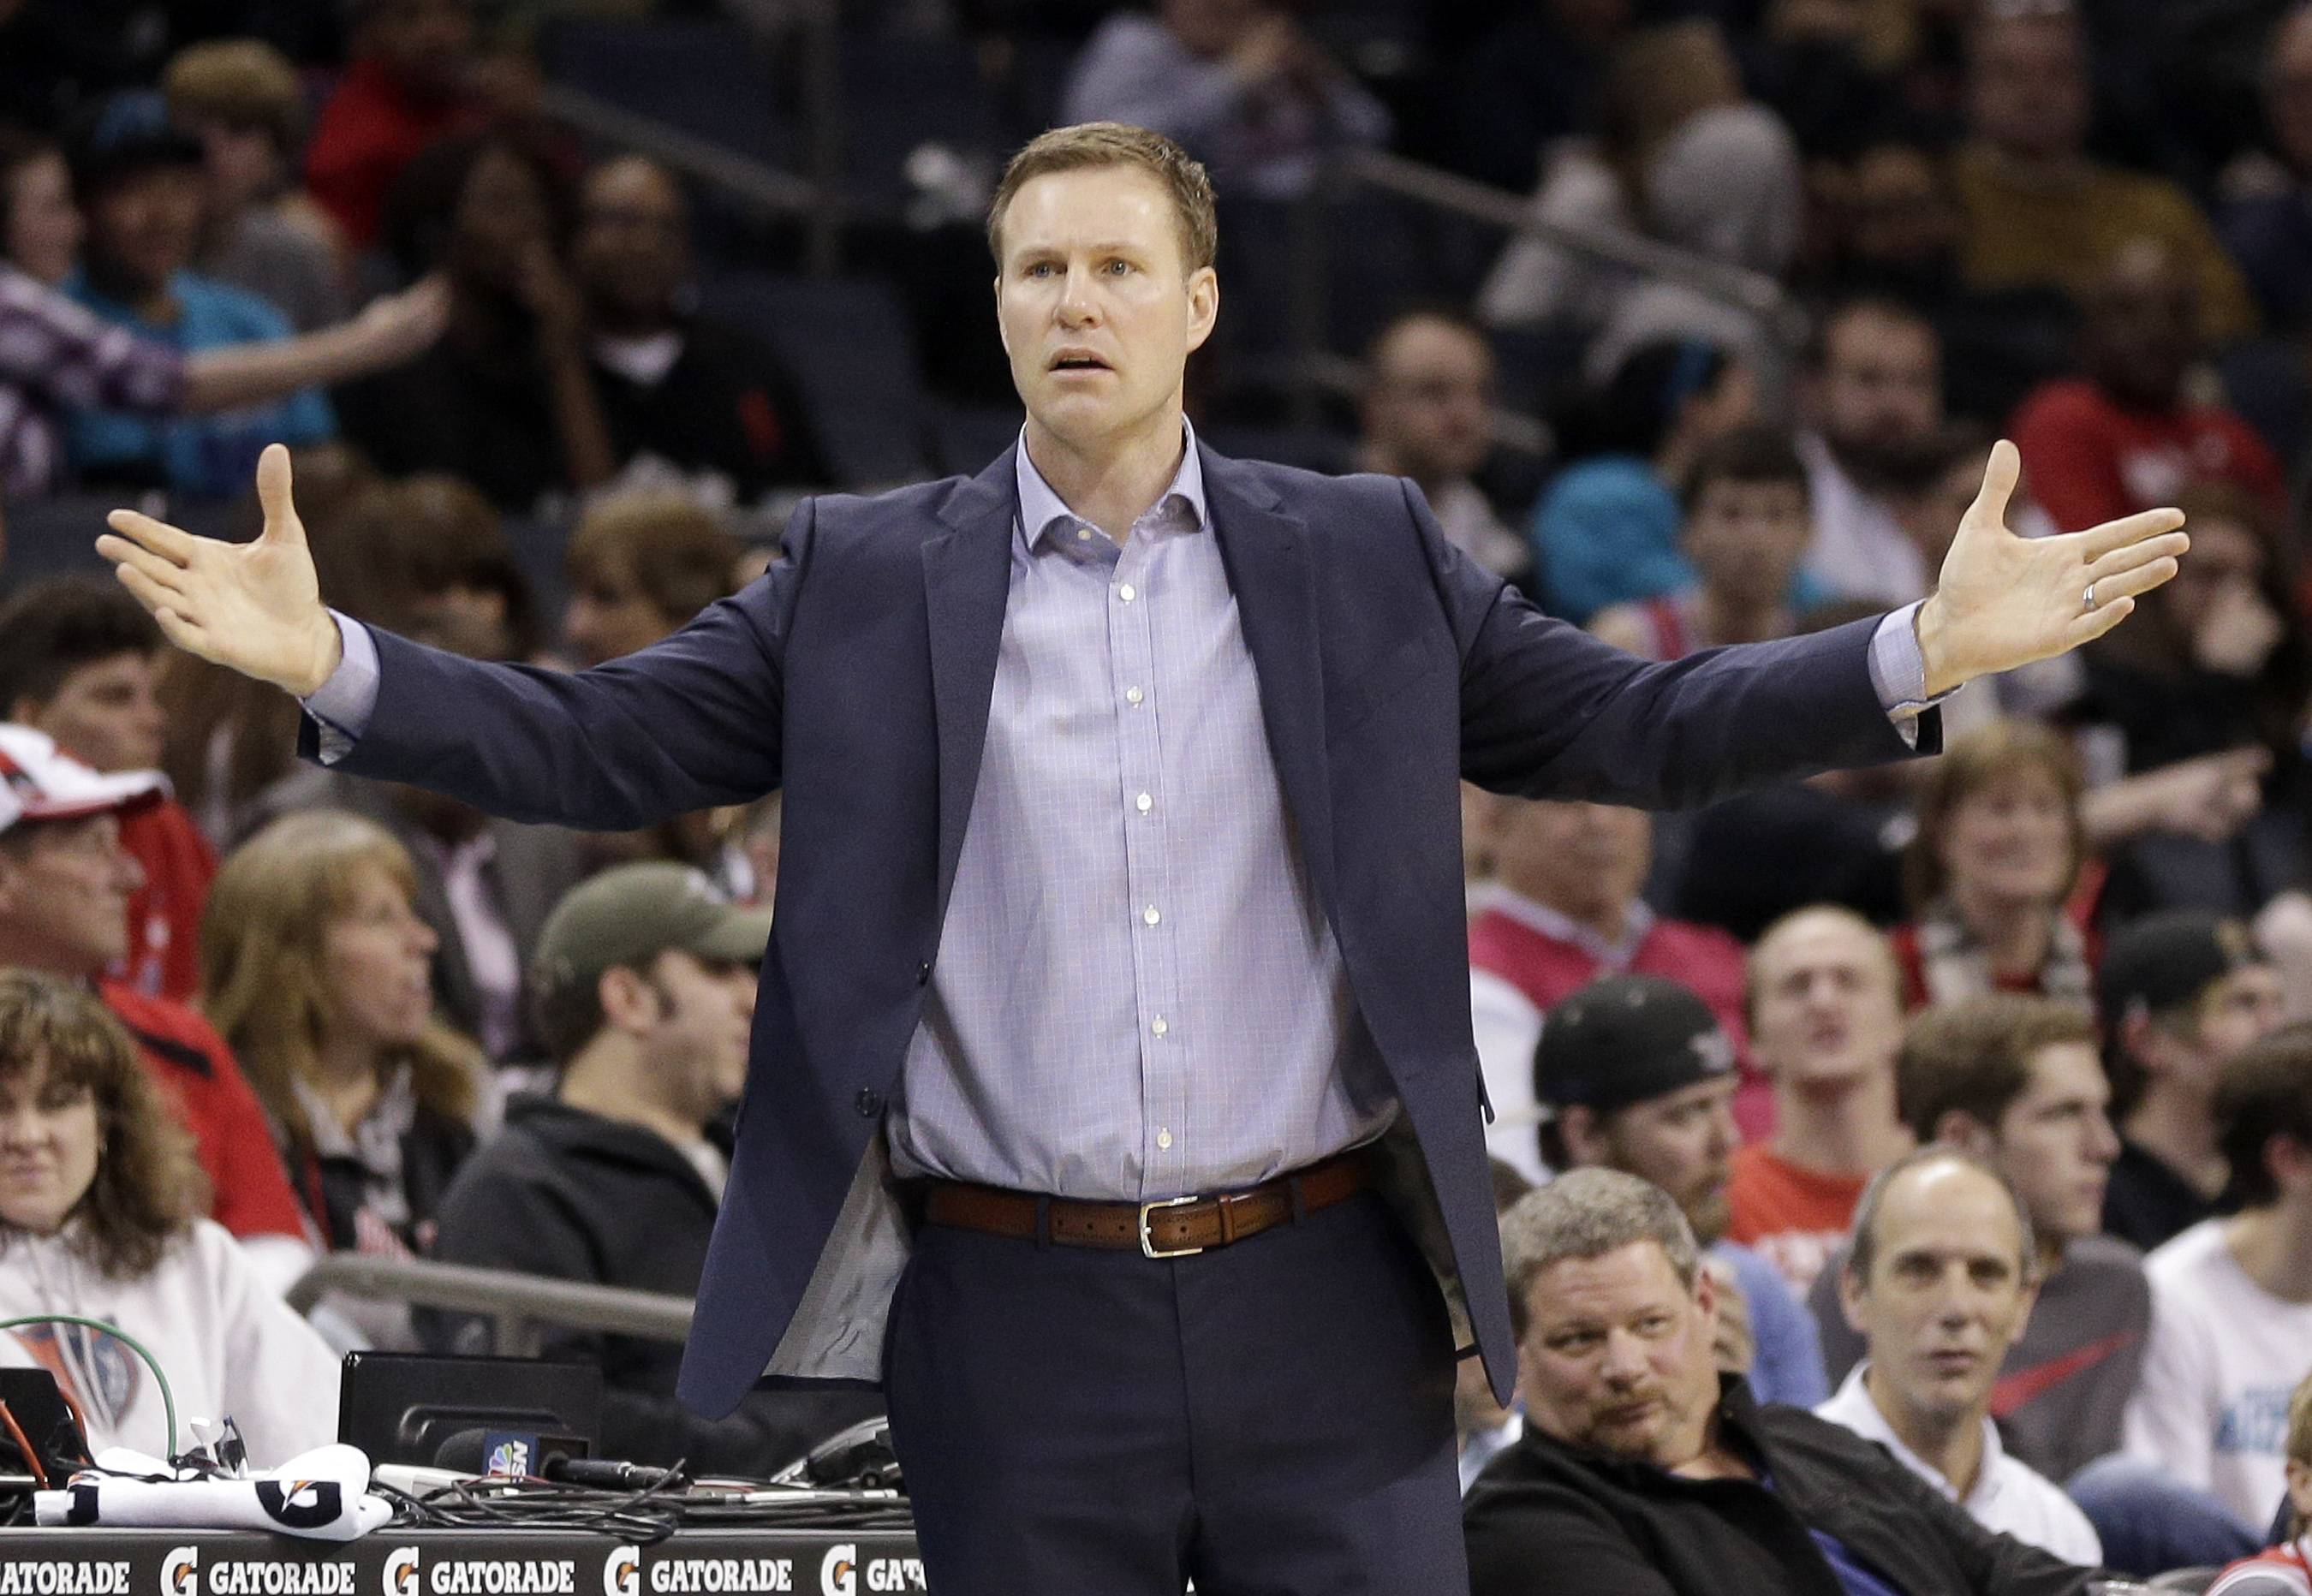 Chicago Bulls head coach Fred Hoiberg reacts to a call in the second half of an NBA basketball game against the Charlotte Hornets in Charlotte, N.C., Monday, Feb. 8, 2016. The Hornets won 108-91. (AP Photo/Chuck Burton)